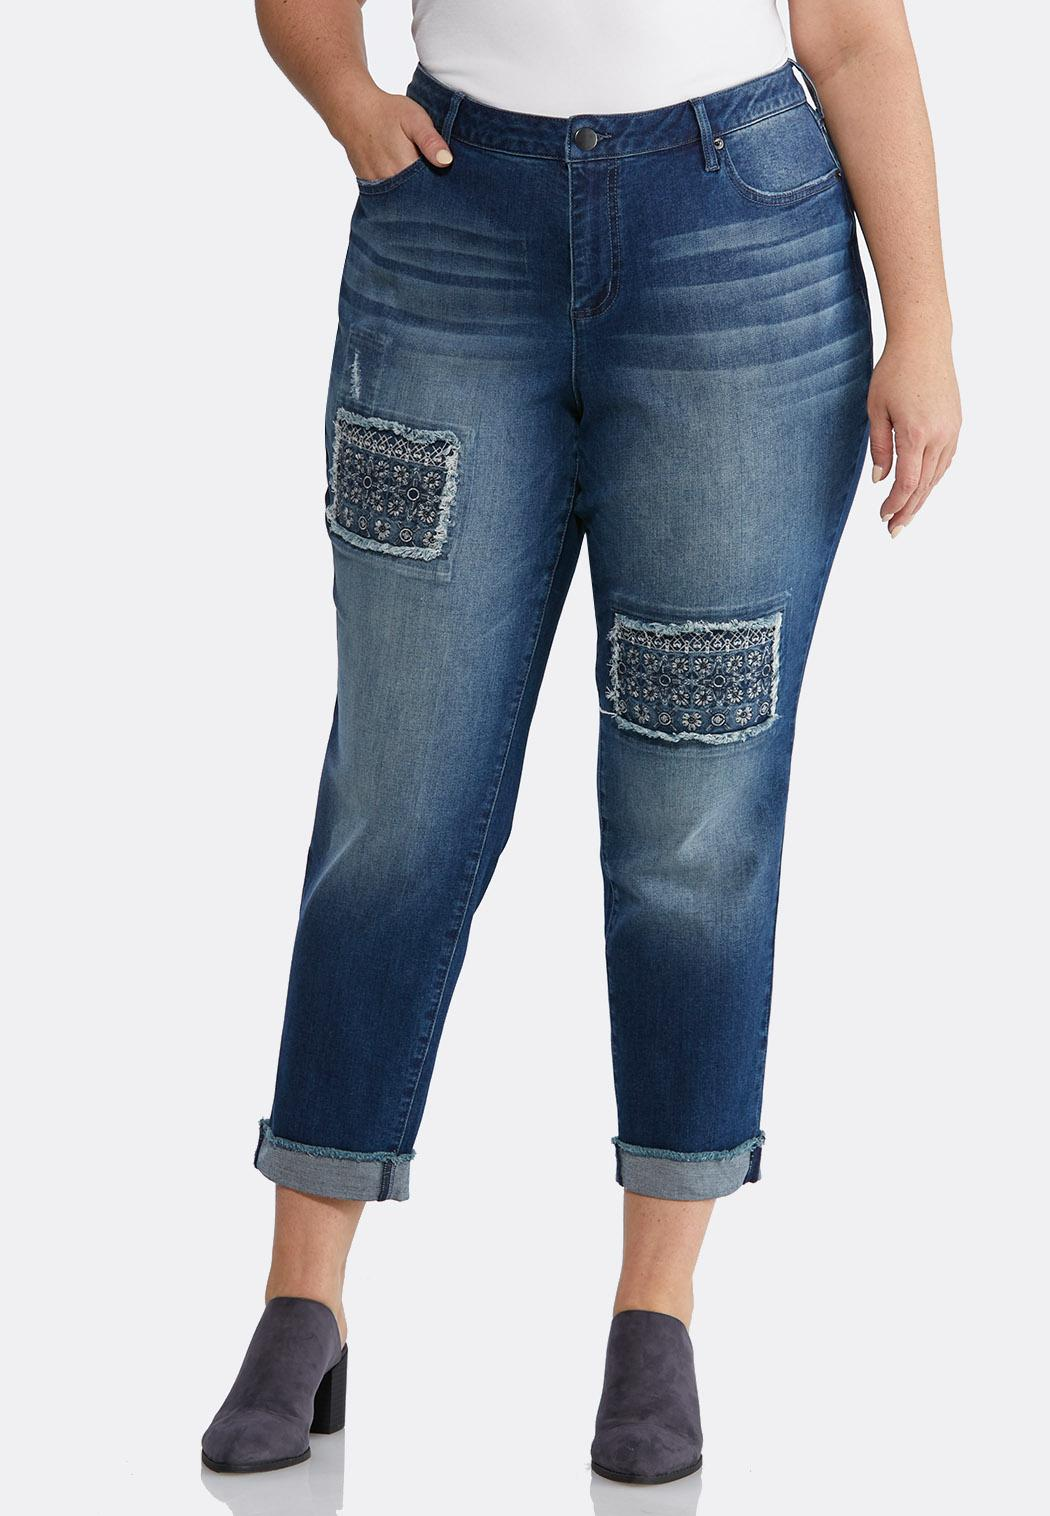 a909e515ee1 Plus Size Distressed Patchwork Ankle Jeans Ankle Pants Cato Fashions